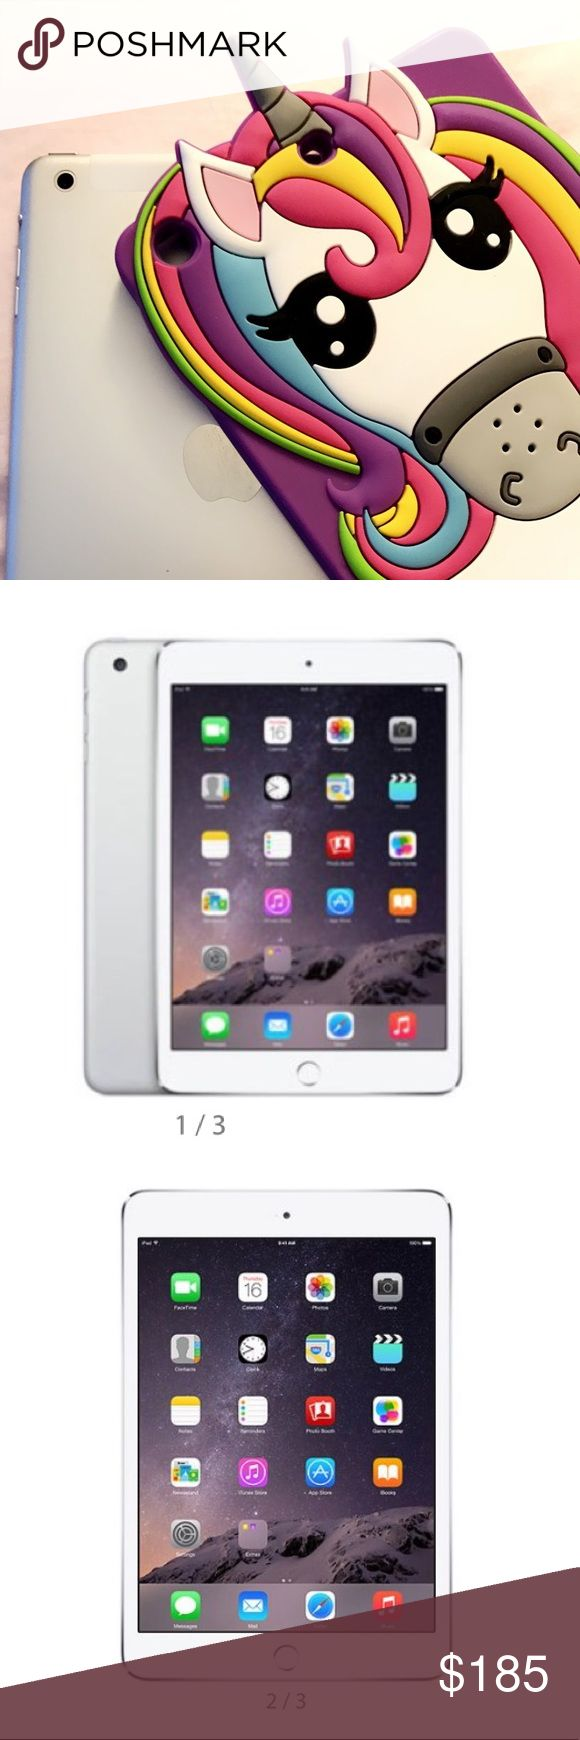 iPad mini 3 Silver 16GB Wi-Fi Used iPad in great condition. This was a first generation model (MD537LL/A) with built-in wifi capability. No scratches, used for music purposes, original screen, functions properly. Serial #F7NLME4MF19F Apple Other